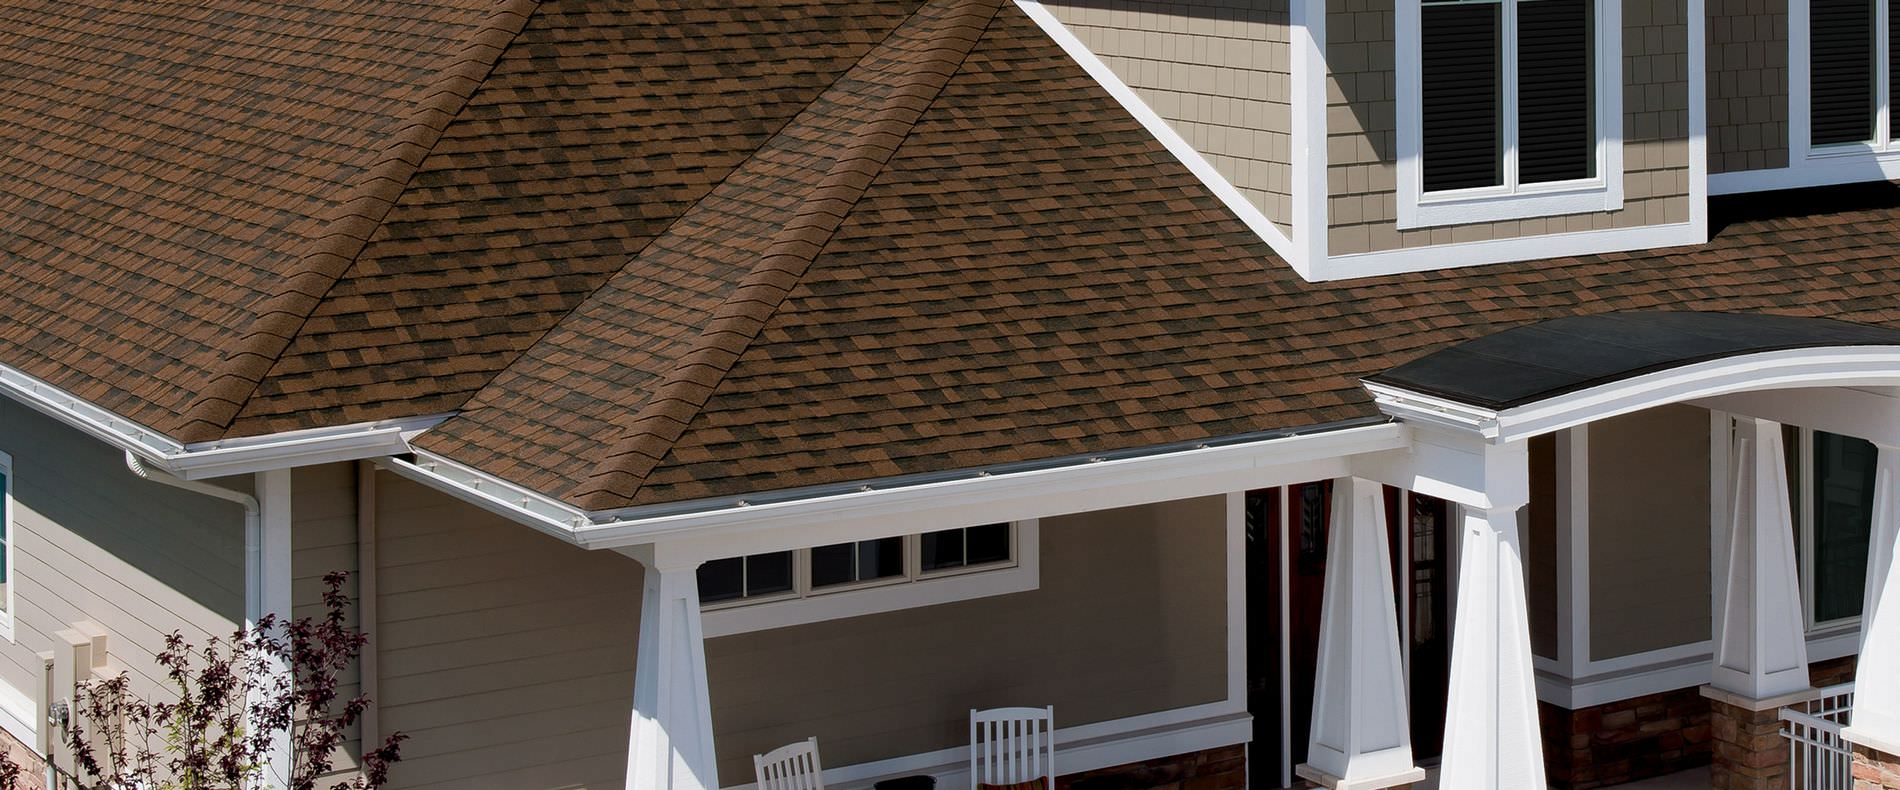 Beautiful Homes Start with Heritage Shingles: Heritage Shingles | Tamko Heritage Shingle Colors | Tamko Heritage Shingles Colors